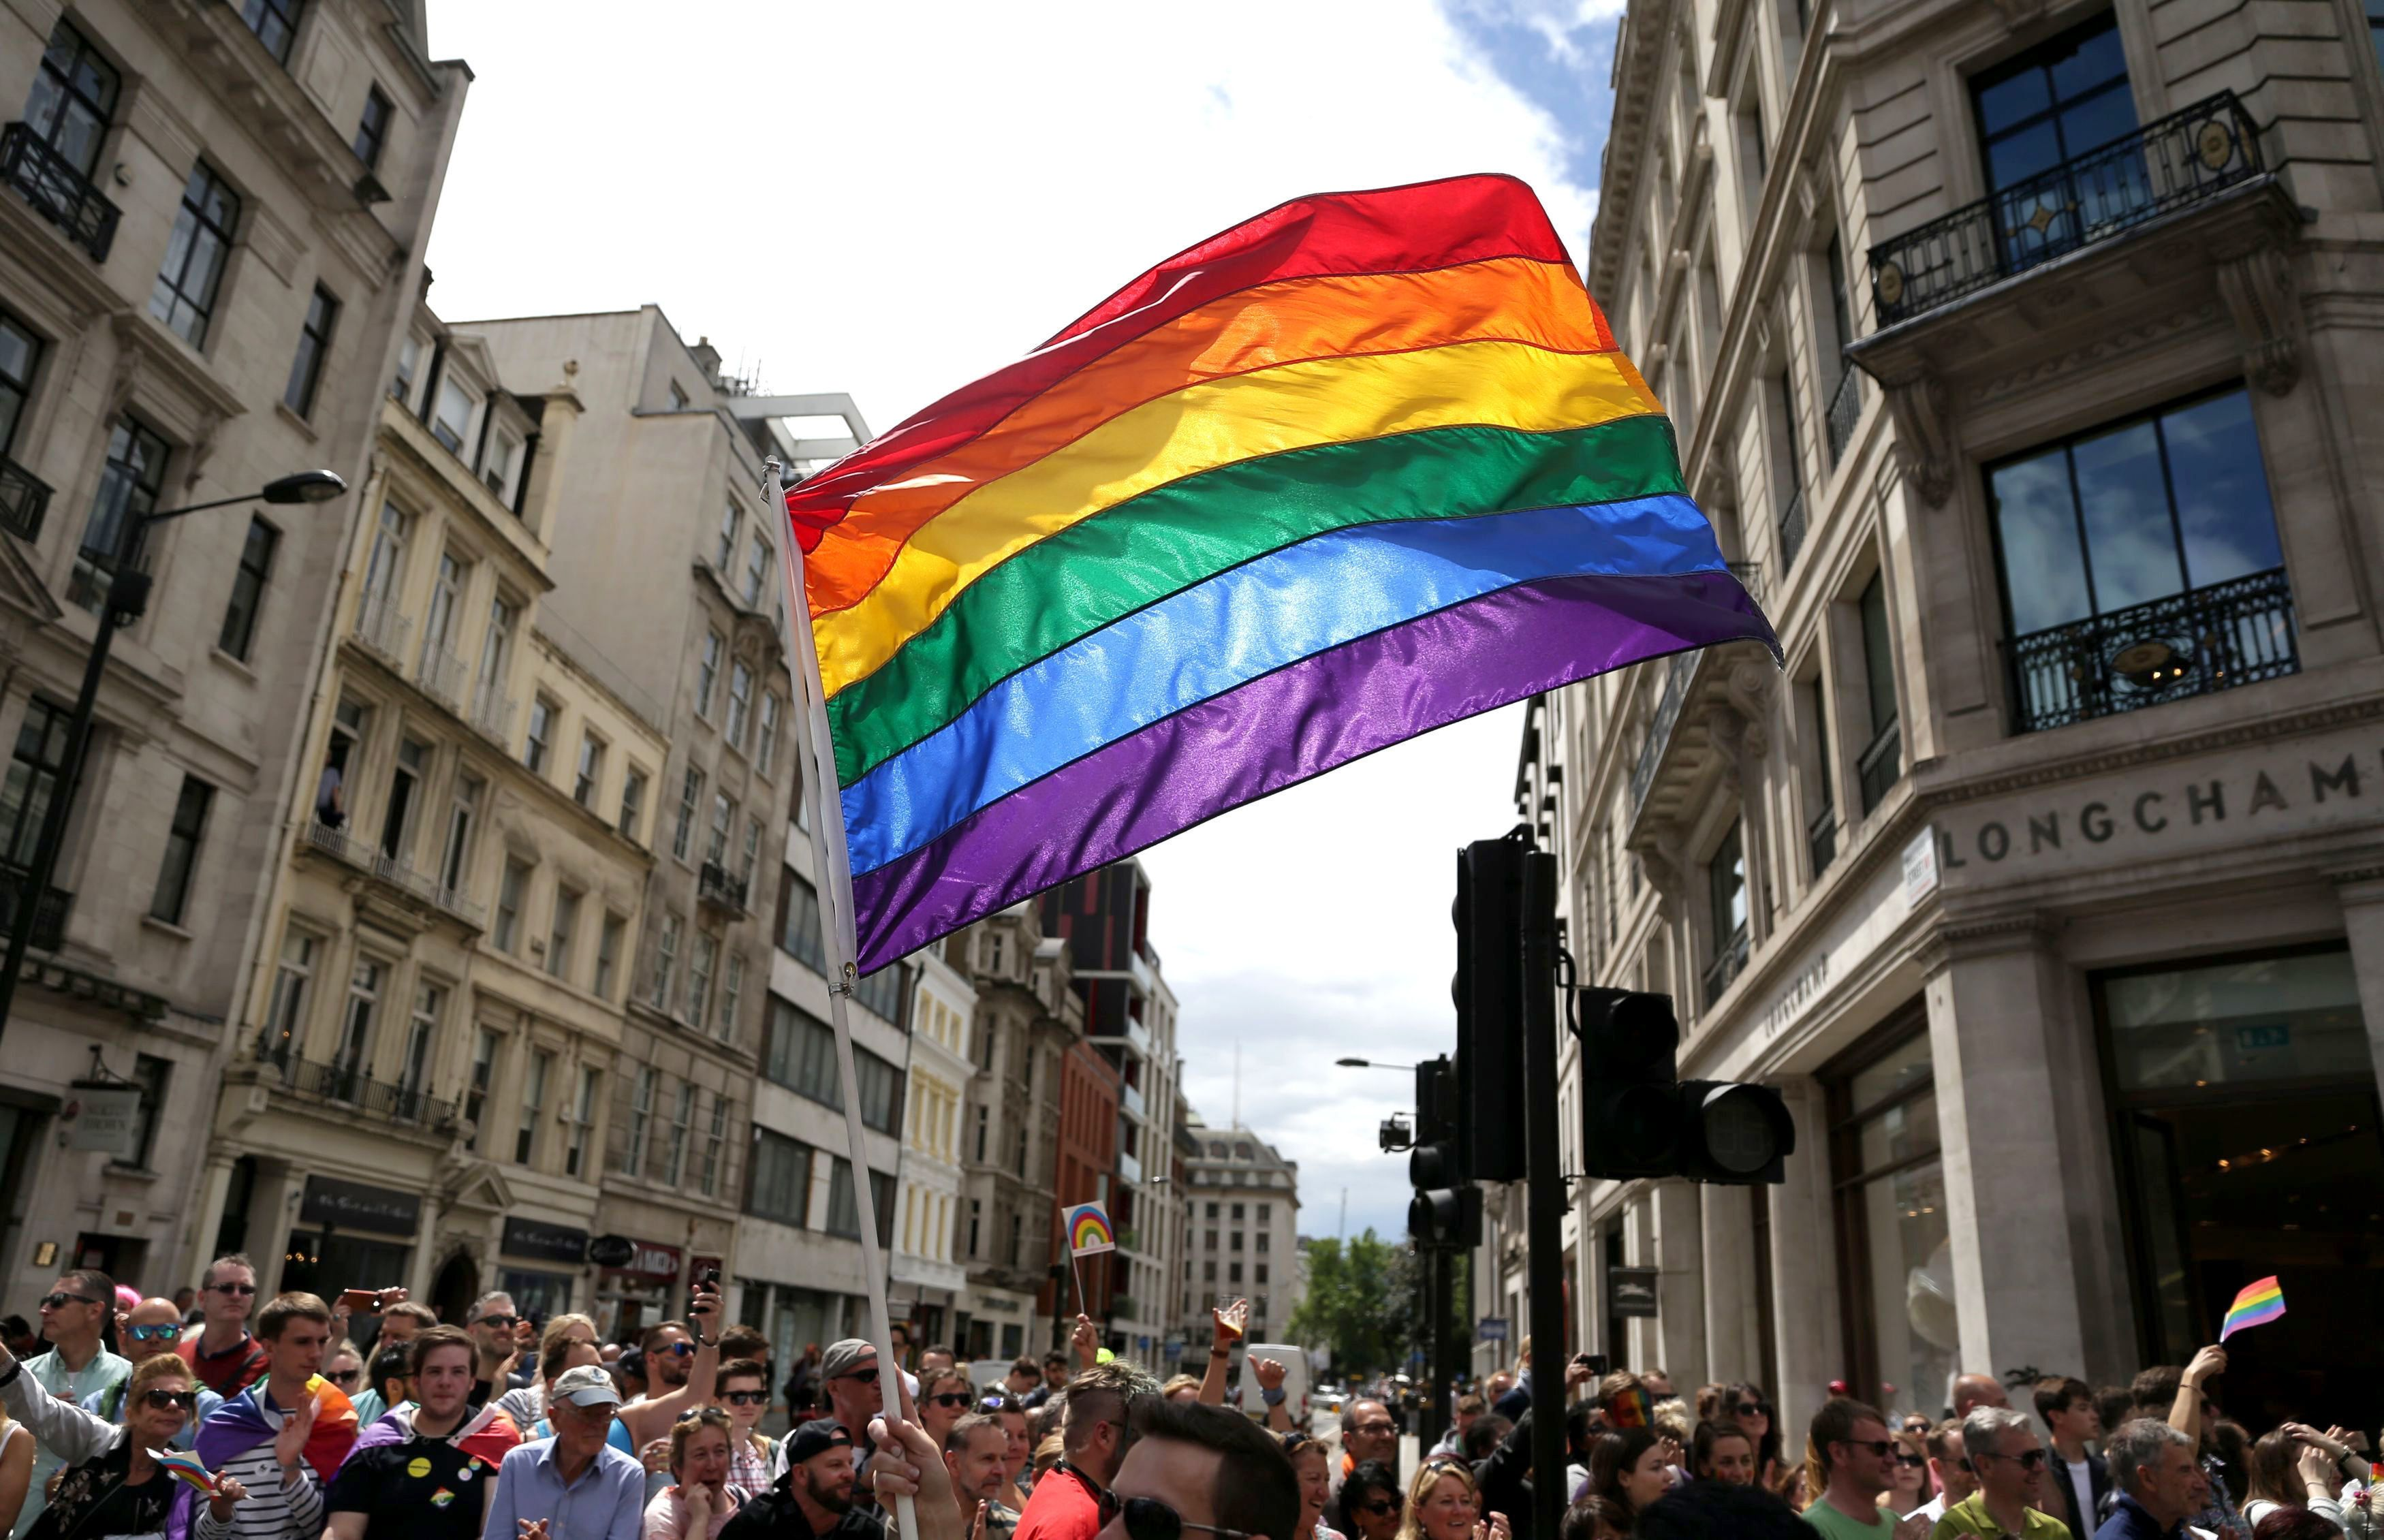 'Gay Conversion Therapies' To Be Banned Under New Government